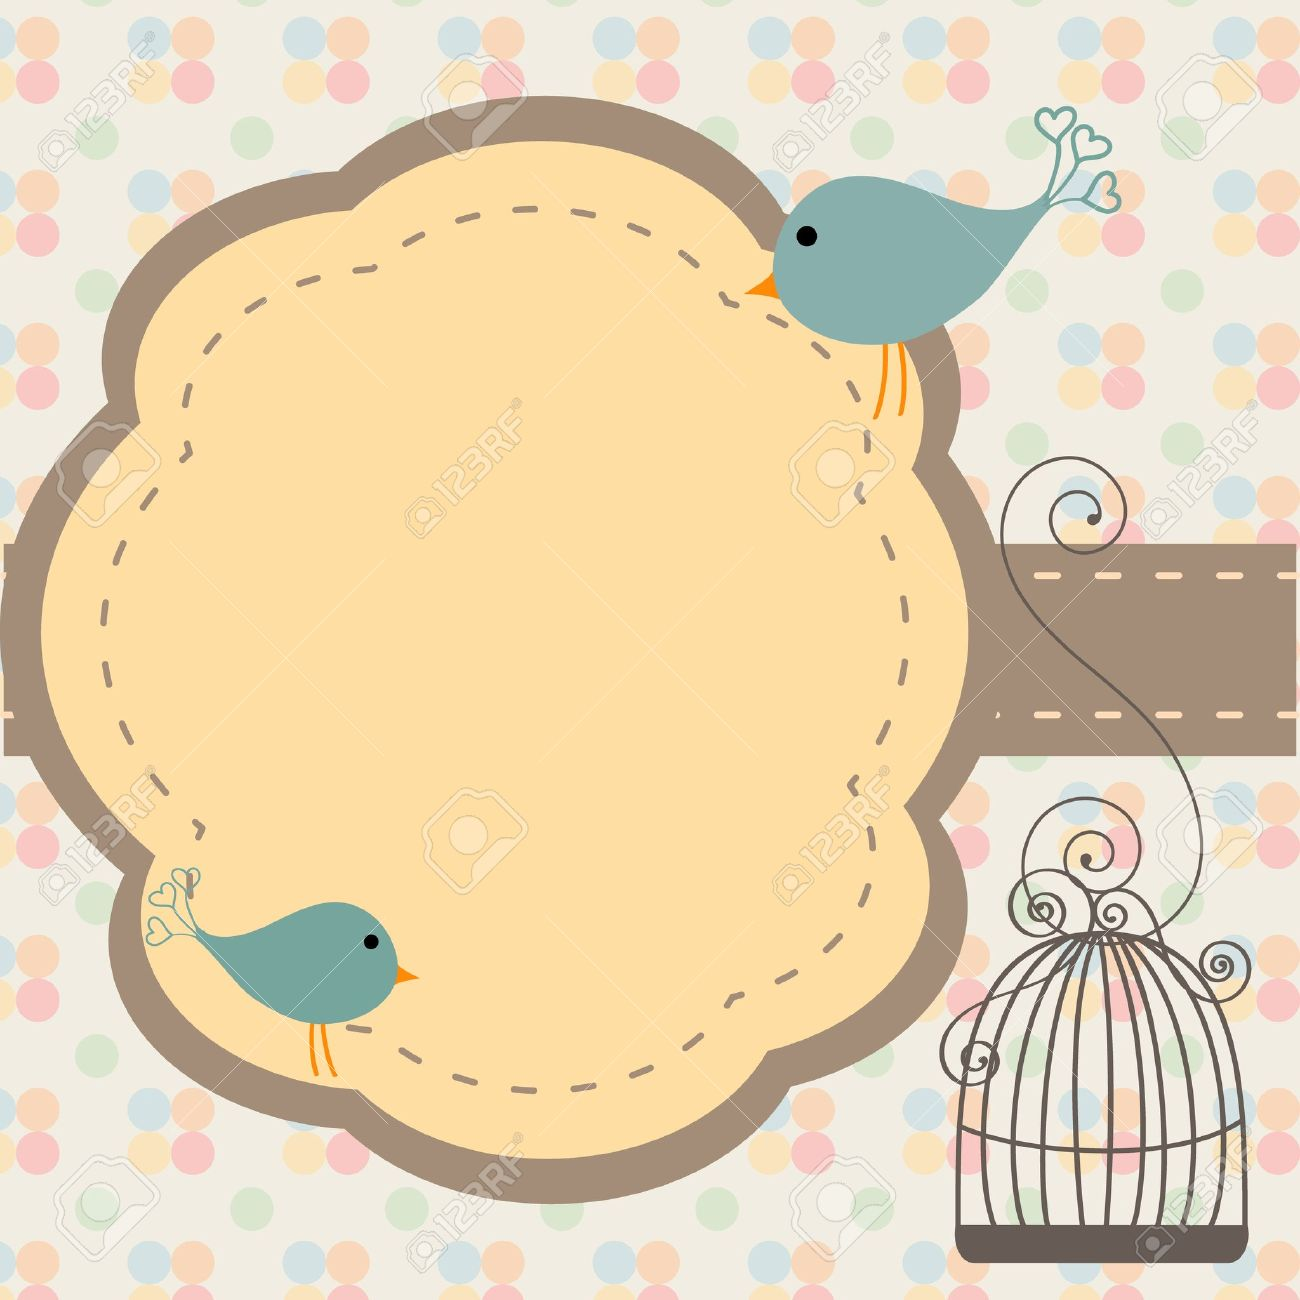 Beautiful Background With Frame And Birdcage, Illustration Royalty ...